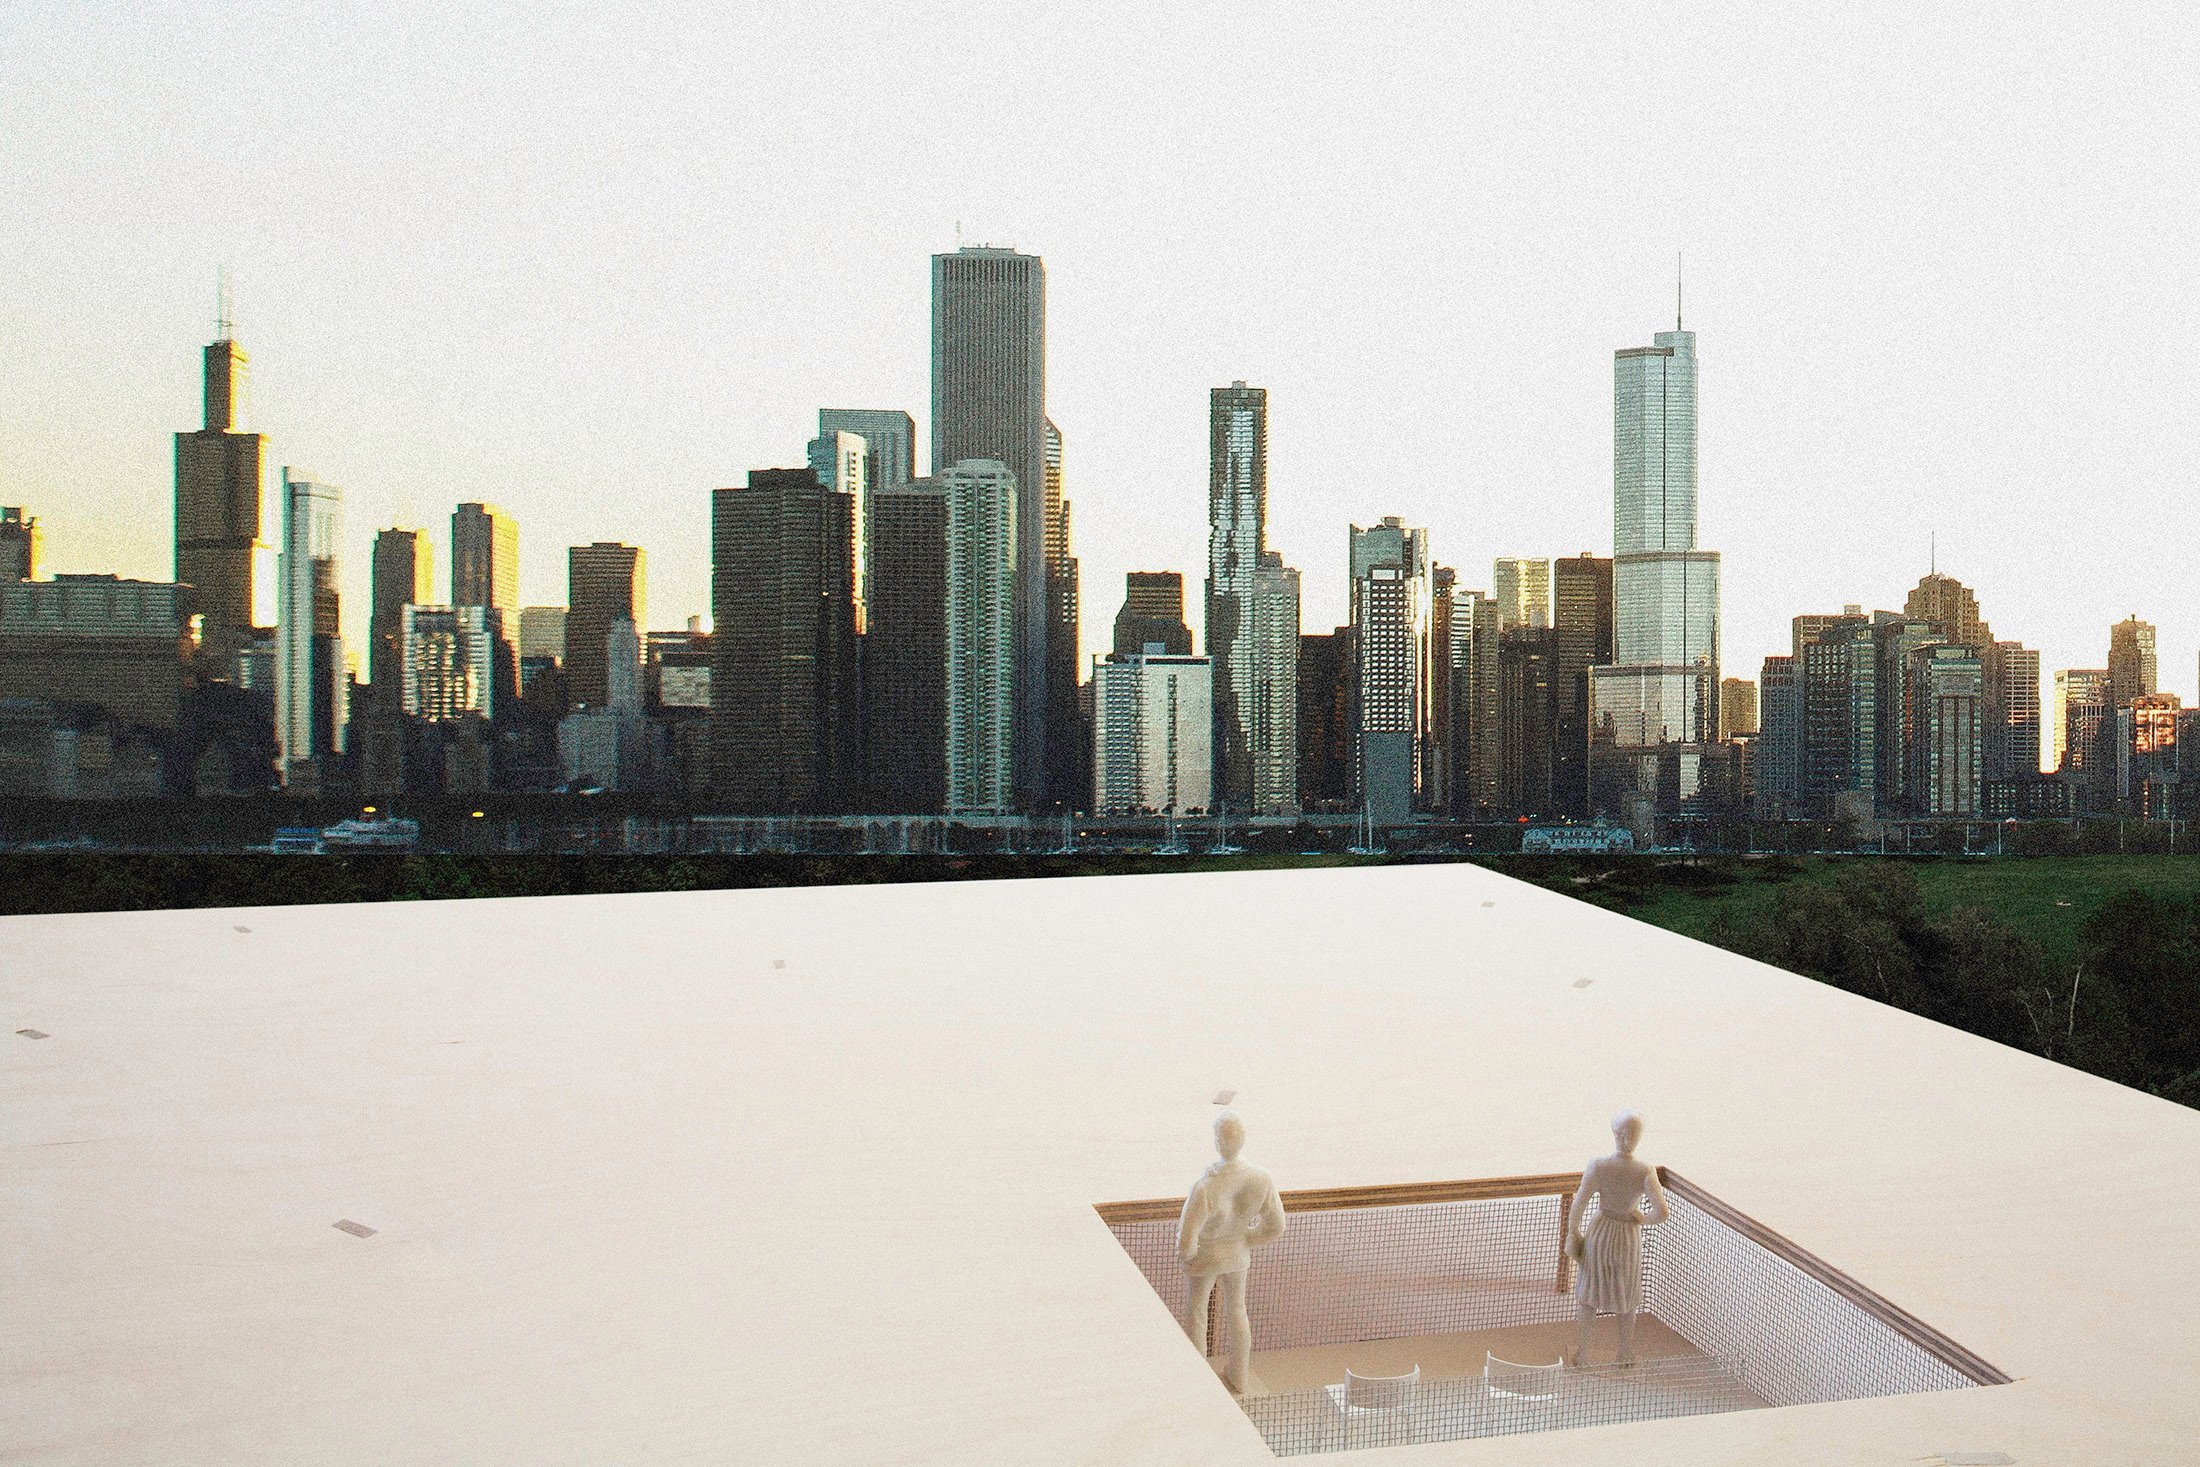 the state of the art of architecture in chicago | chicago tonight